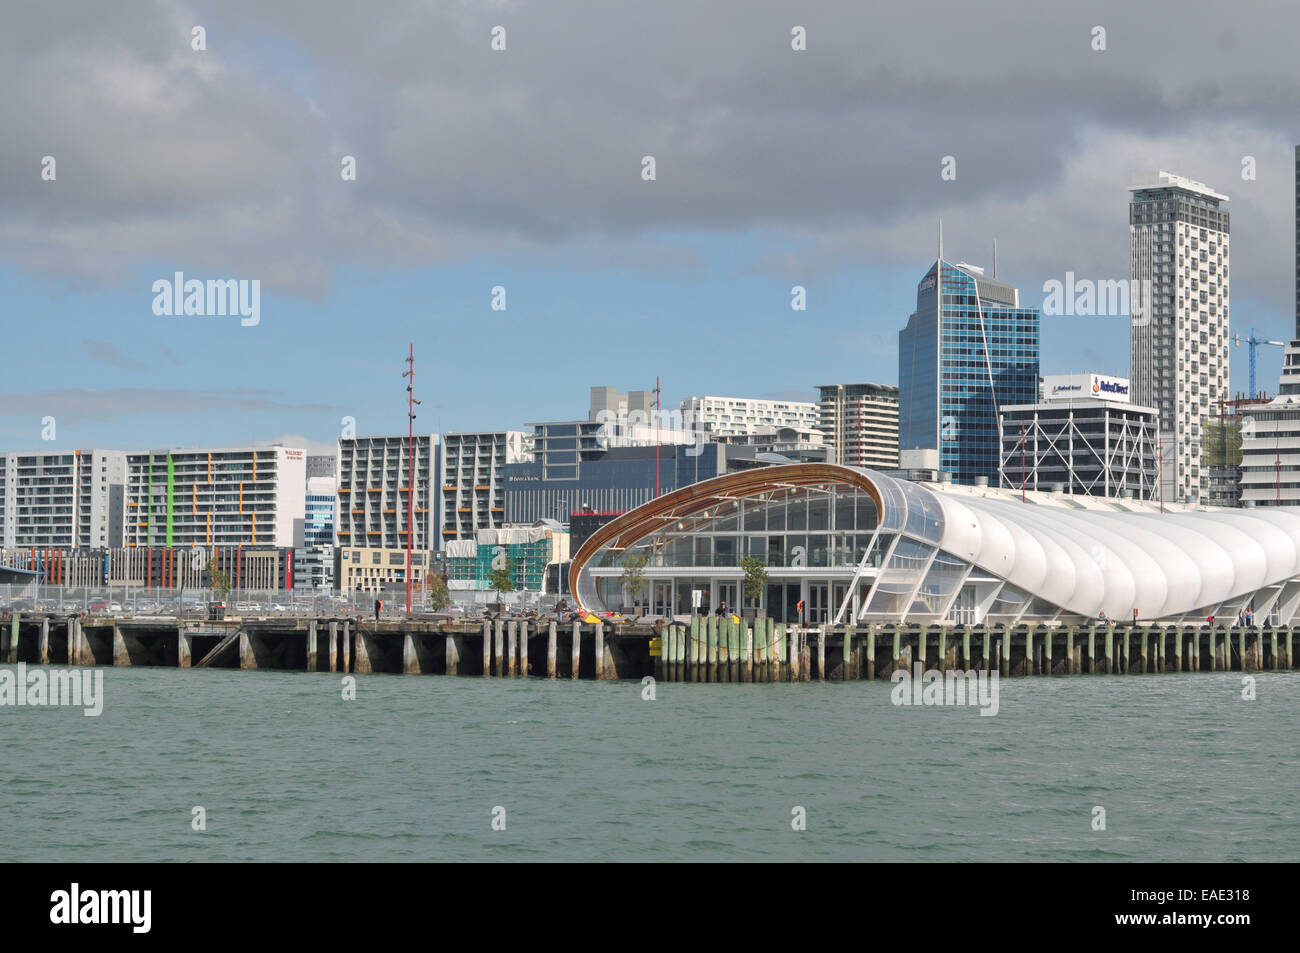 Auckland downtown from sea showing commercial wharves and The Cloud multi-functional venue with high-rise buildings - Stock Image